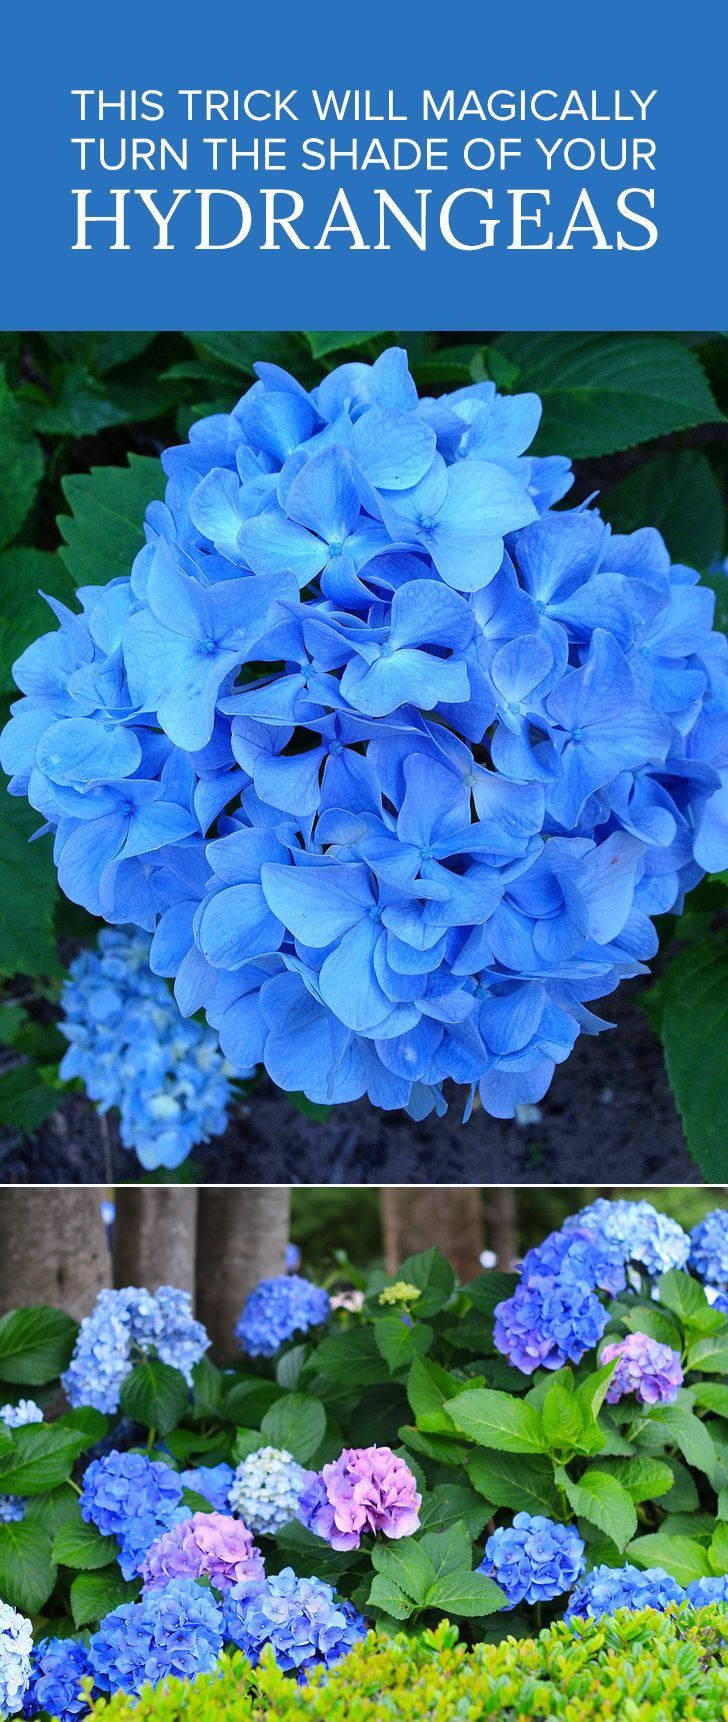 Change the colour of #Hydrangea by Prunin's given tips.